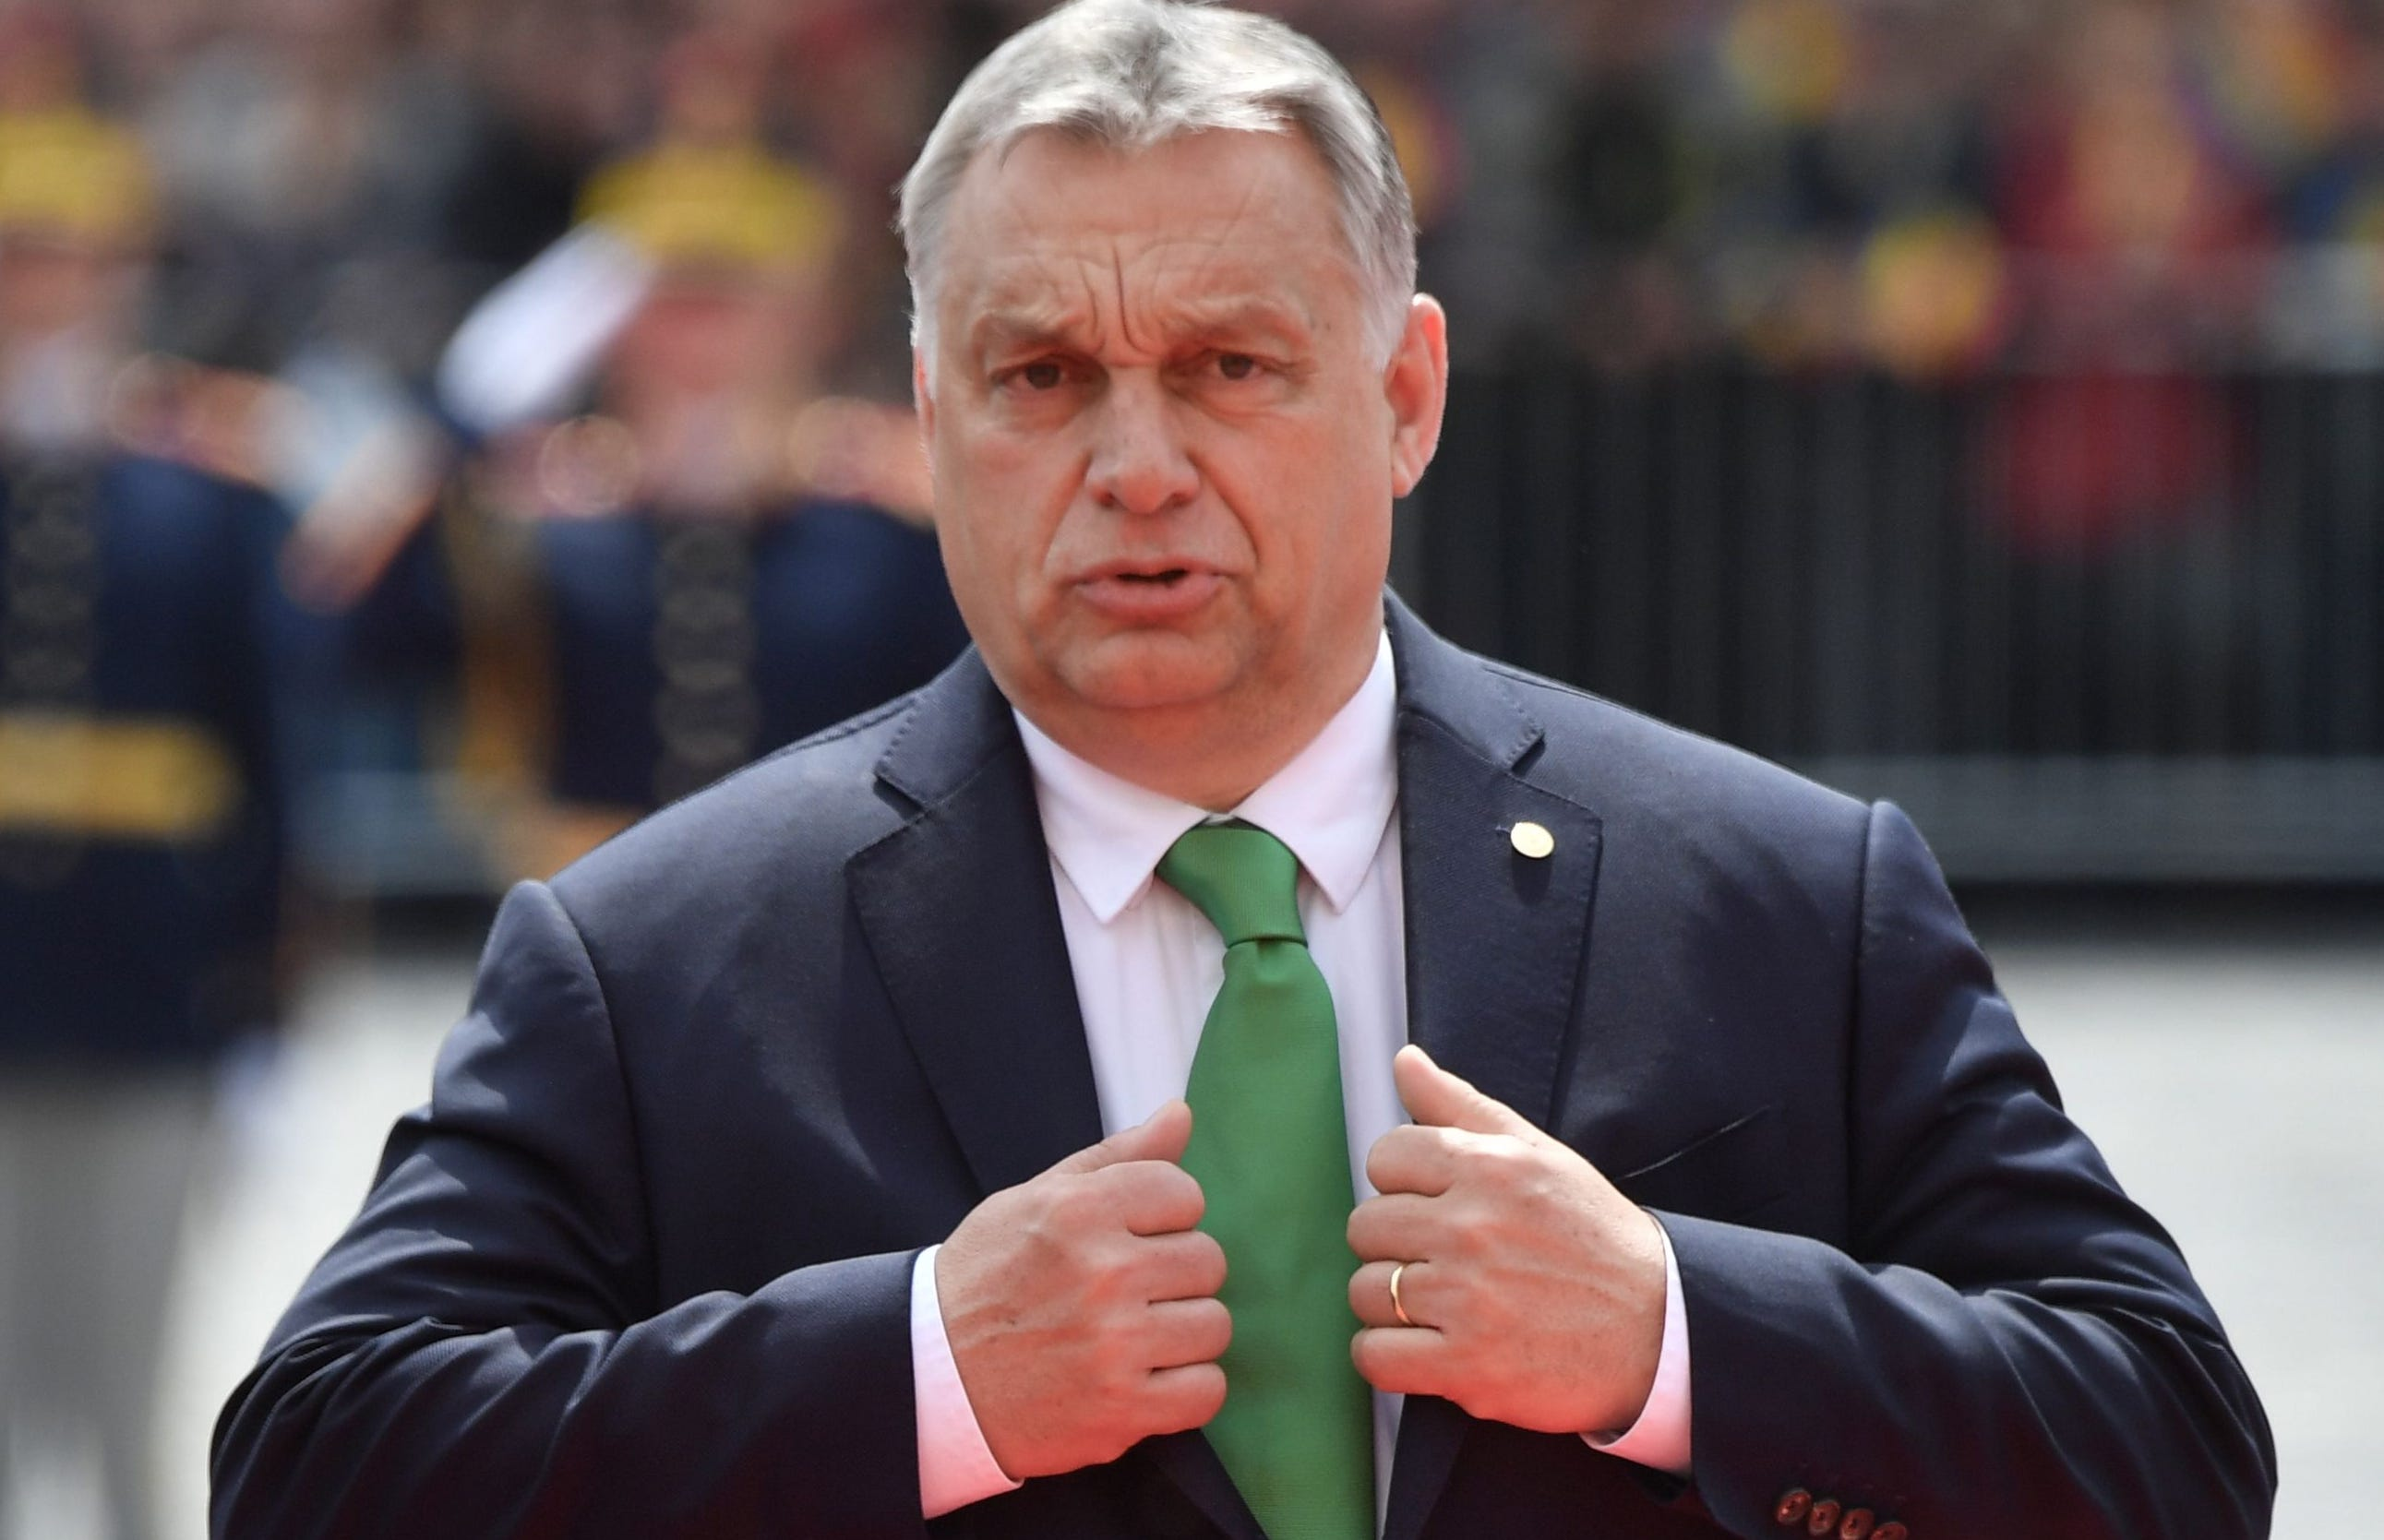 Hungary's Prime Minister Viktor Orban reacts as he arrives for an EU summit in Sibiu, Romania on May 9, 2019.